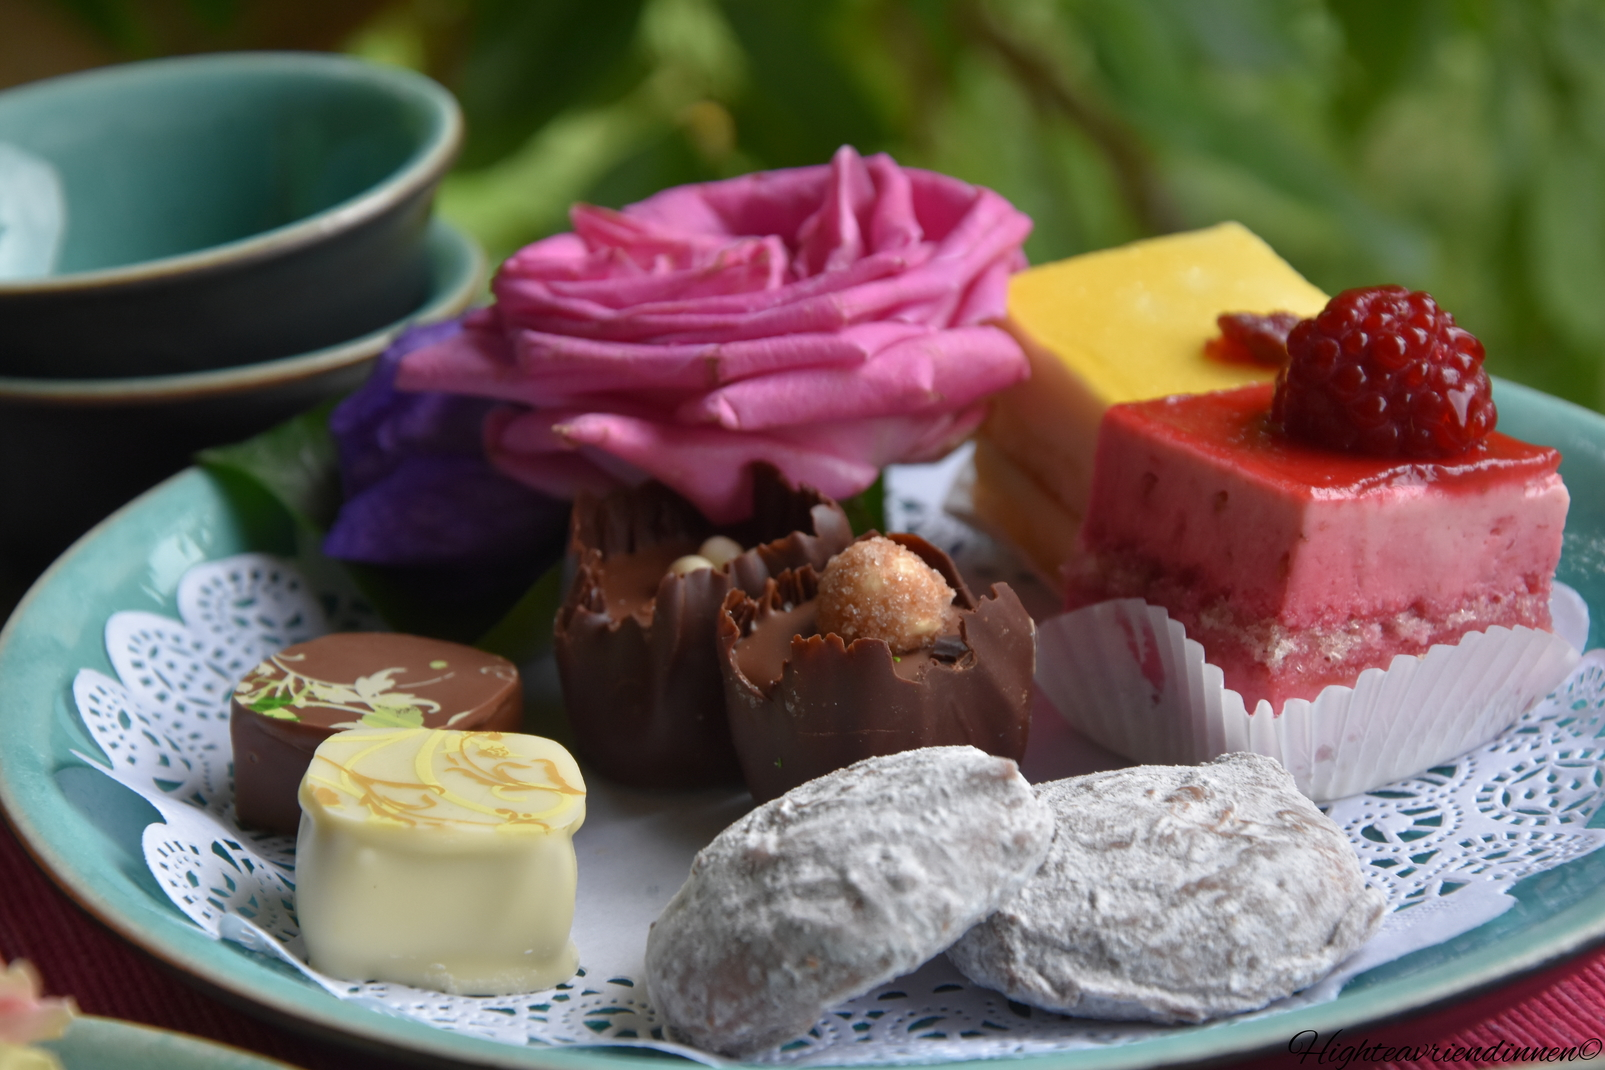 millinger theetuin, high tea vriendinnen, high tea